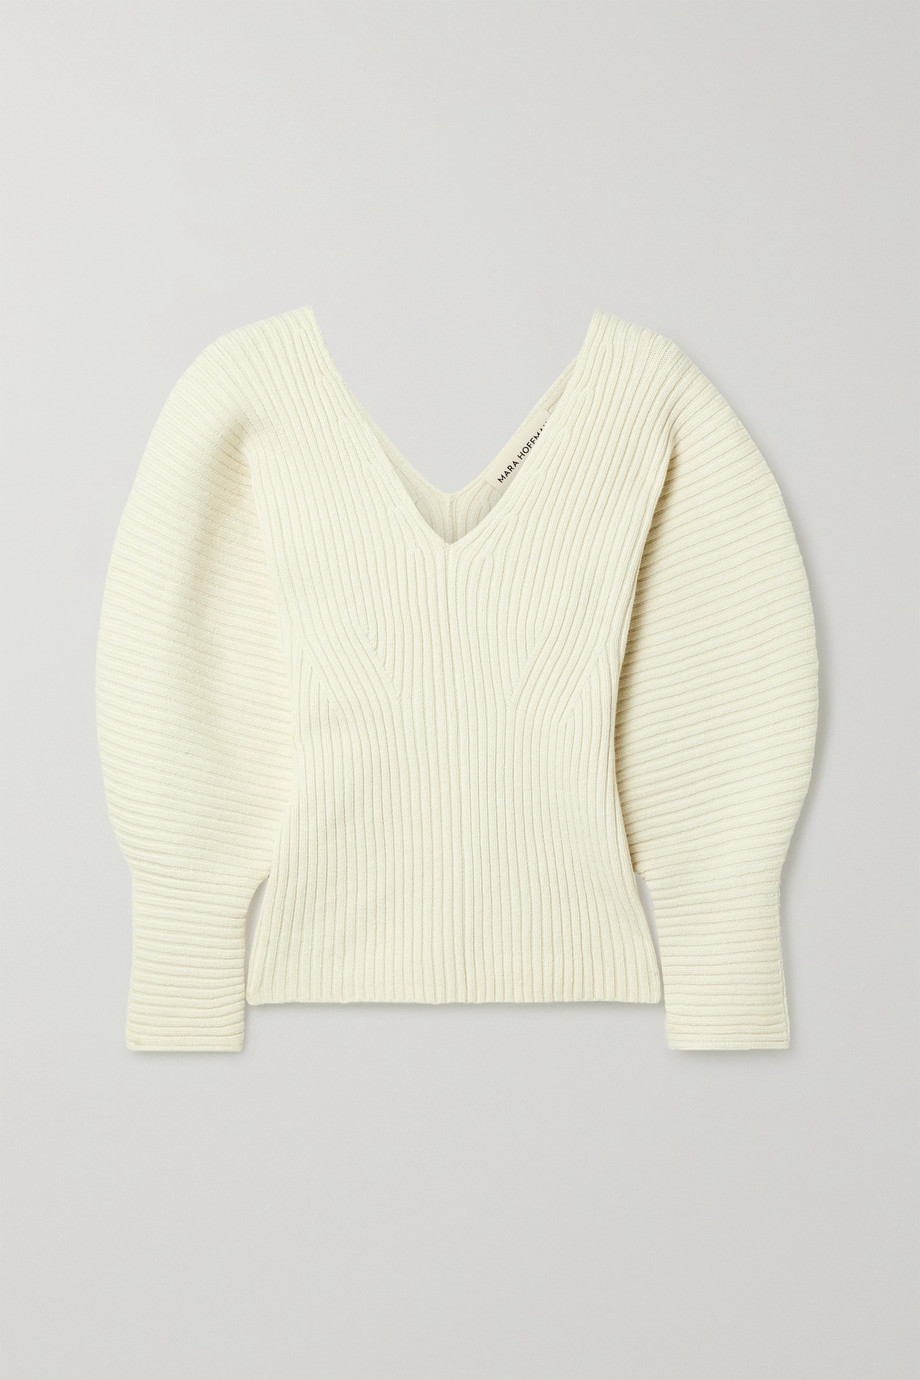 MARA HOFFMAN + NET SUSTAIN Olla ribbed organic cotton-blend sweater